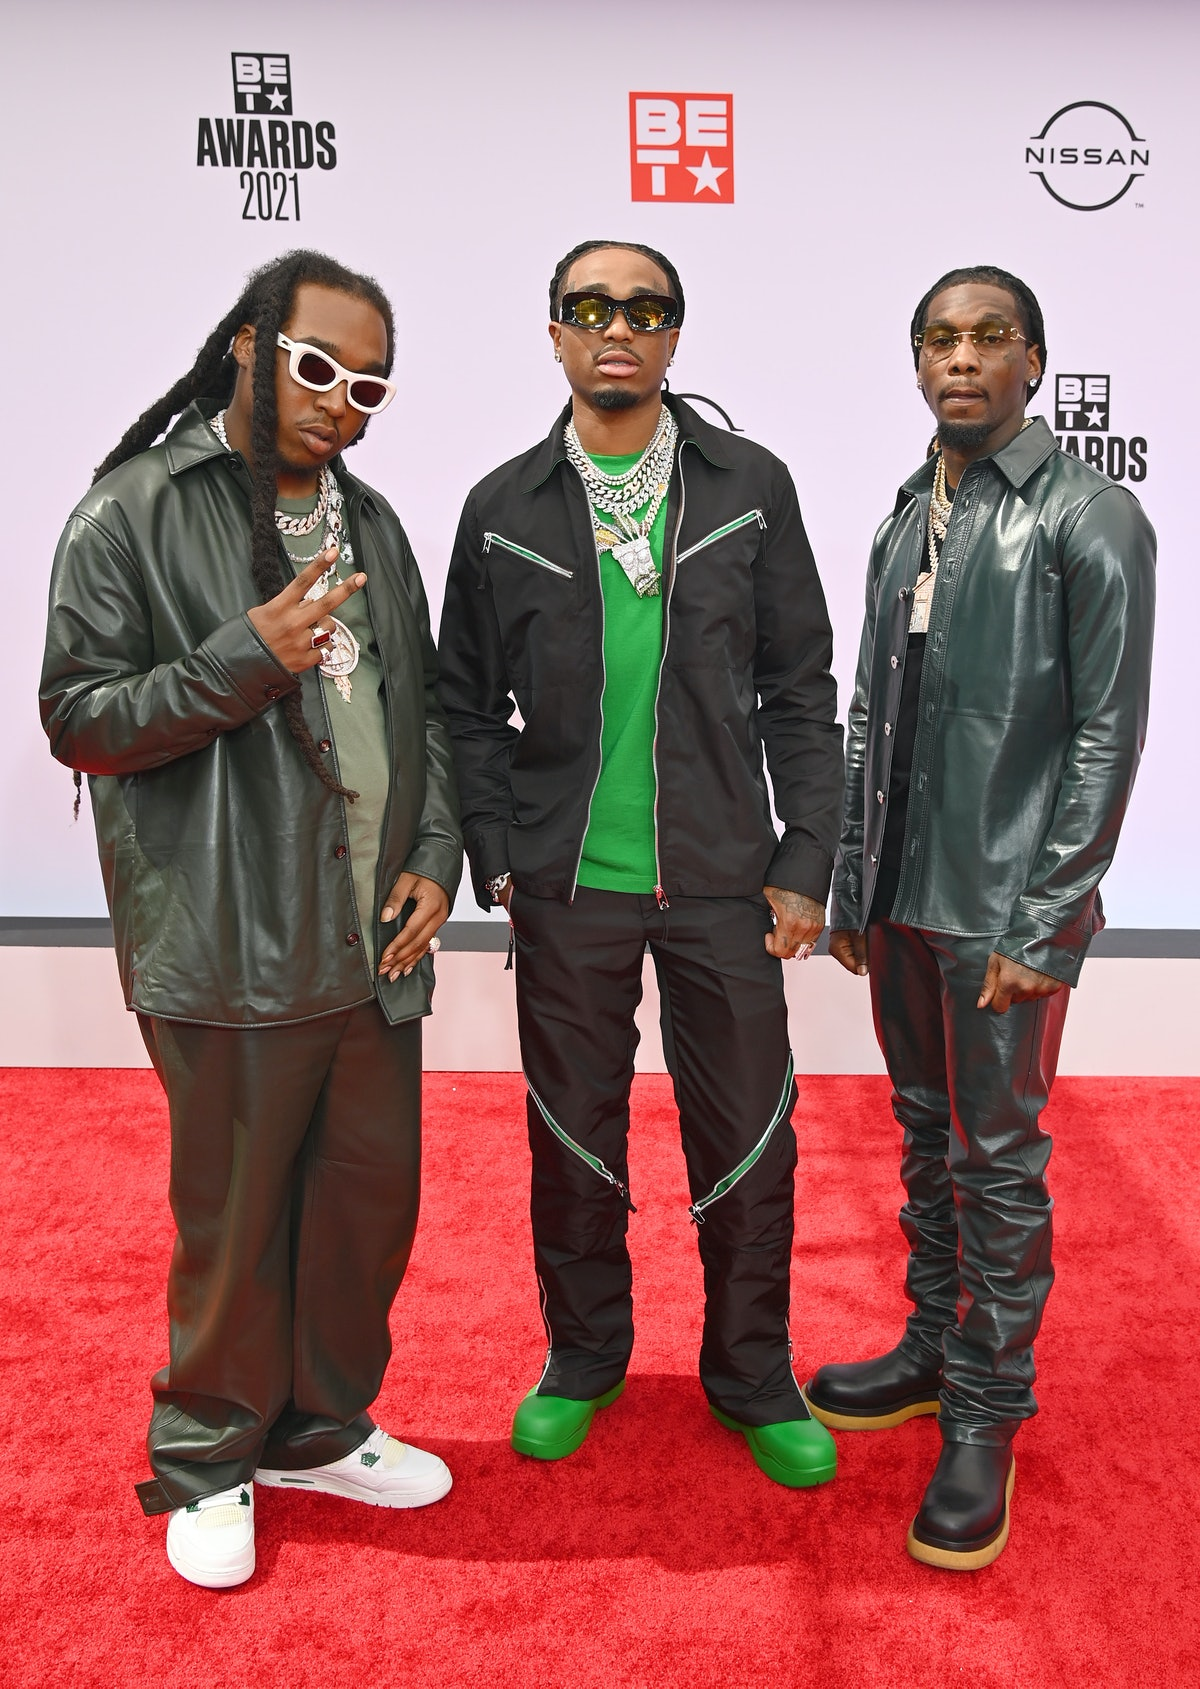 Takeoff, Quavos, and Offset at the 2021 BET Awards